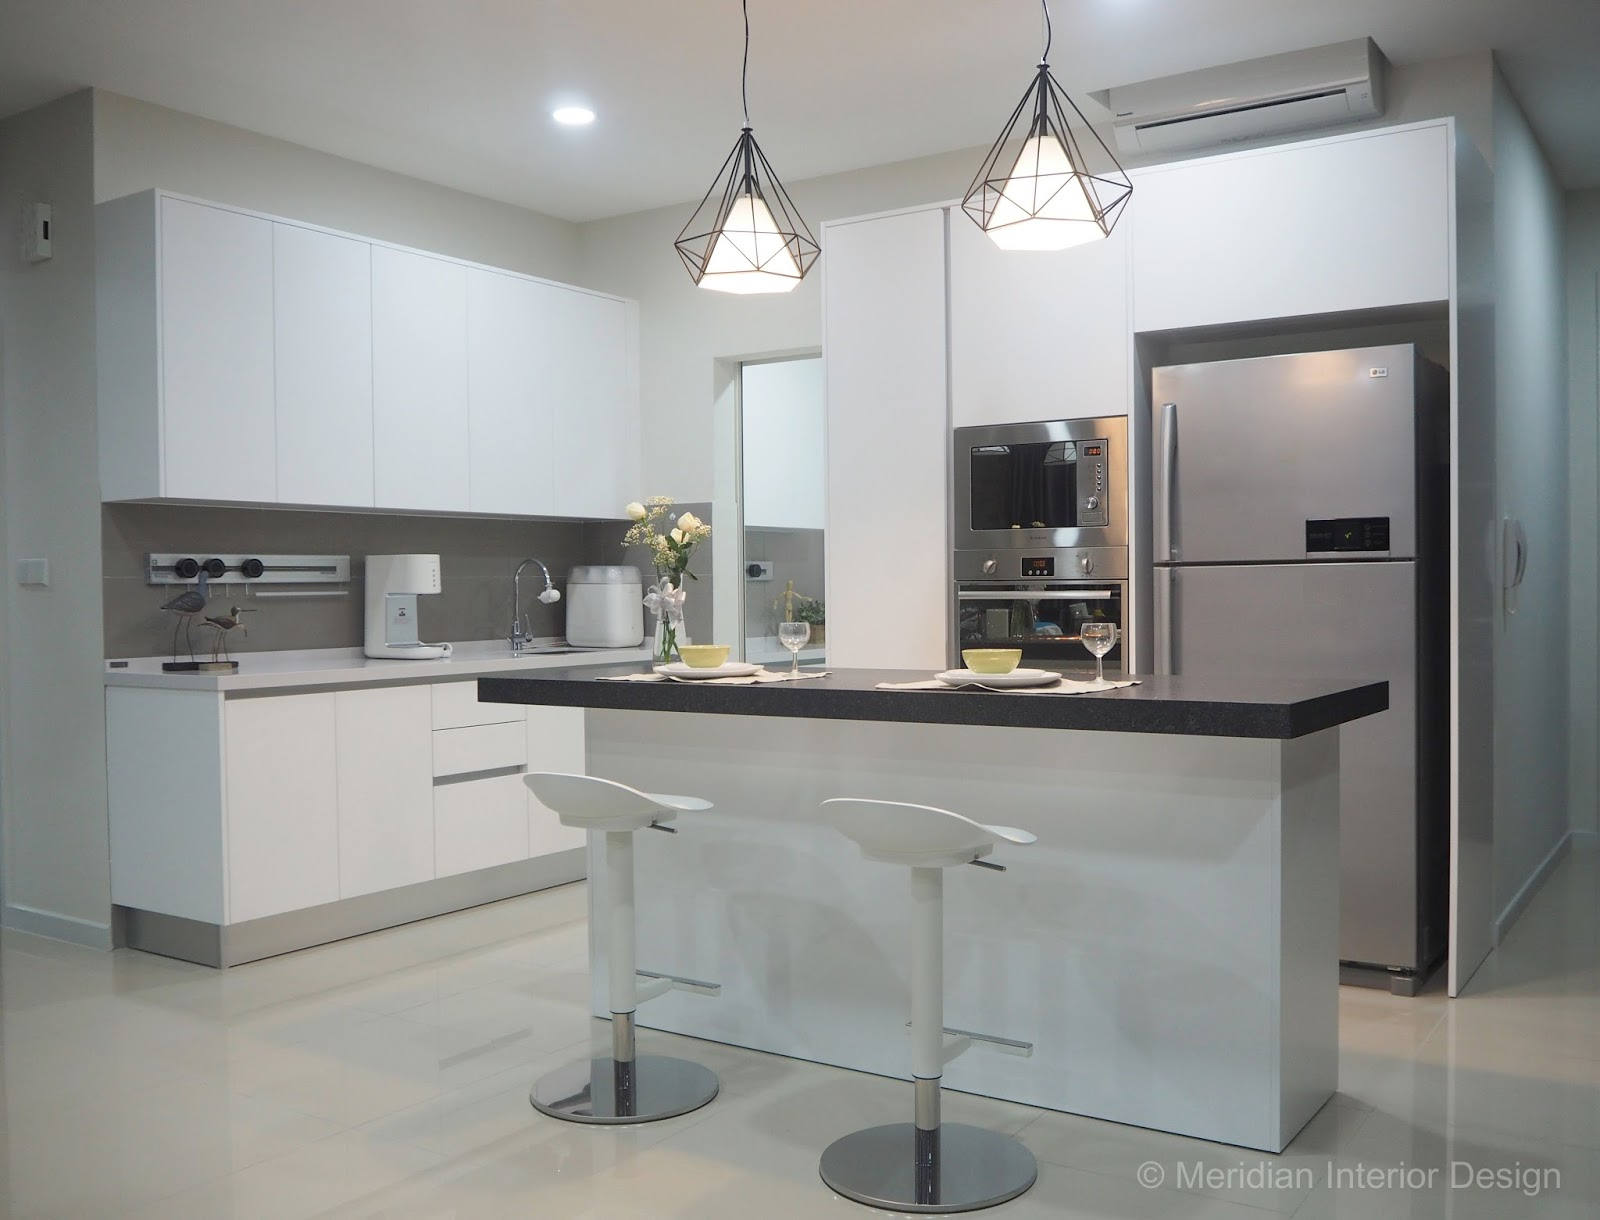 Simple dry kitchen design - A Single Island Is Designed As The Main Focal Point In This Dry Kitchen